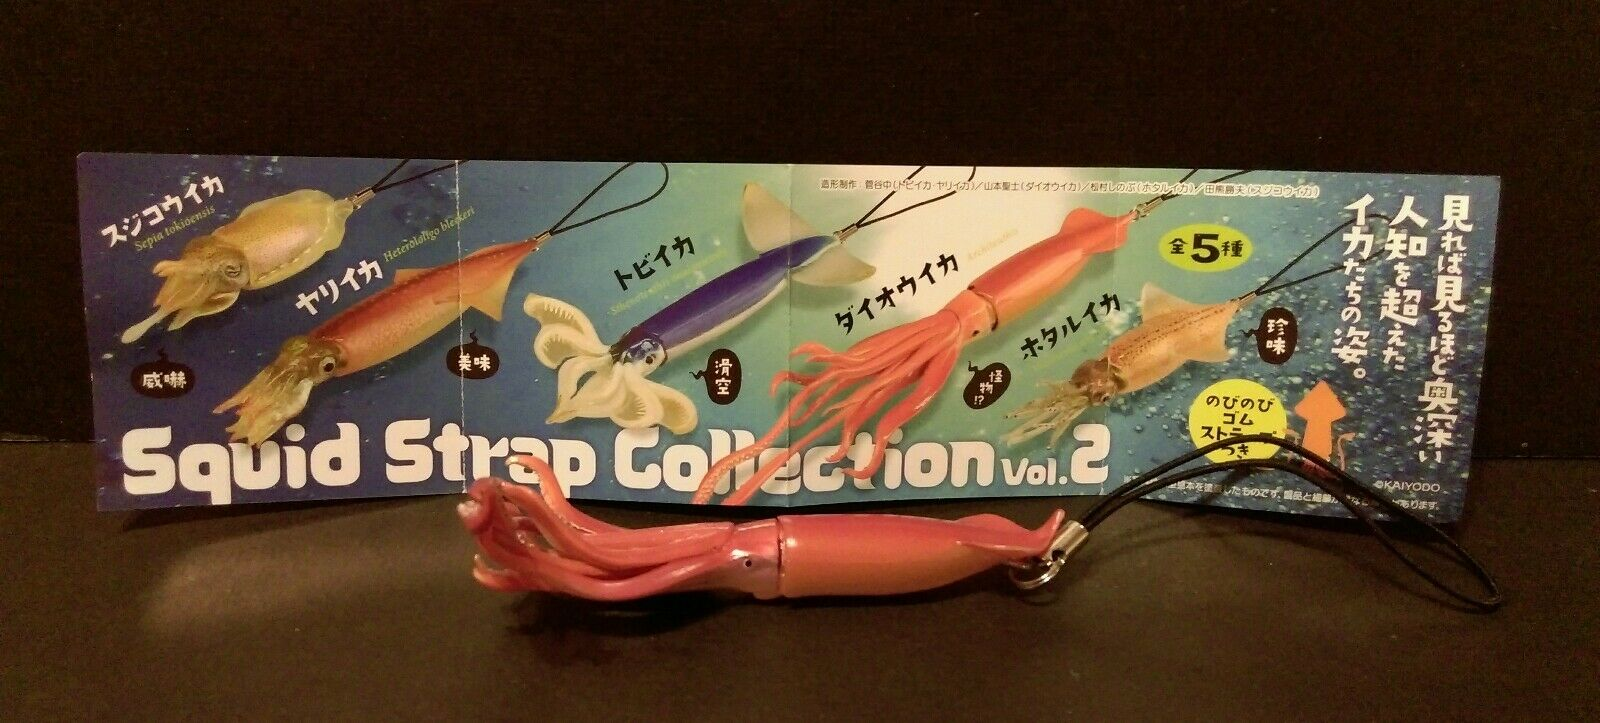 Kaiyodo Capsule Q Museum Ika Colle Ika strap collection